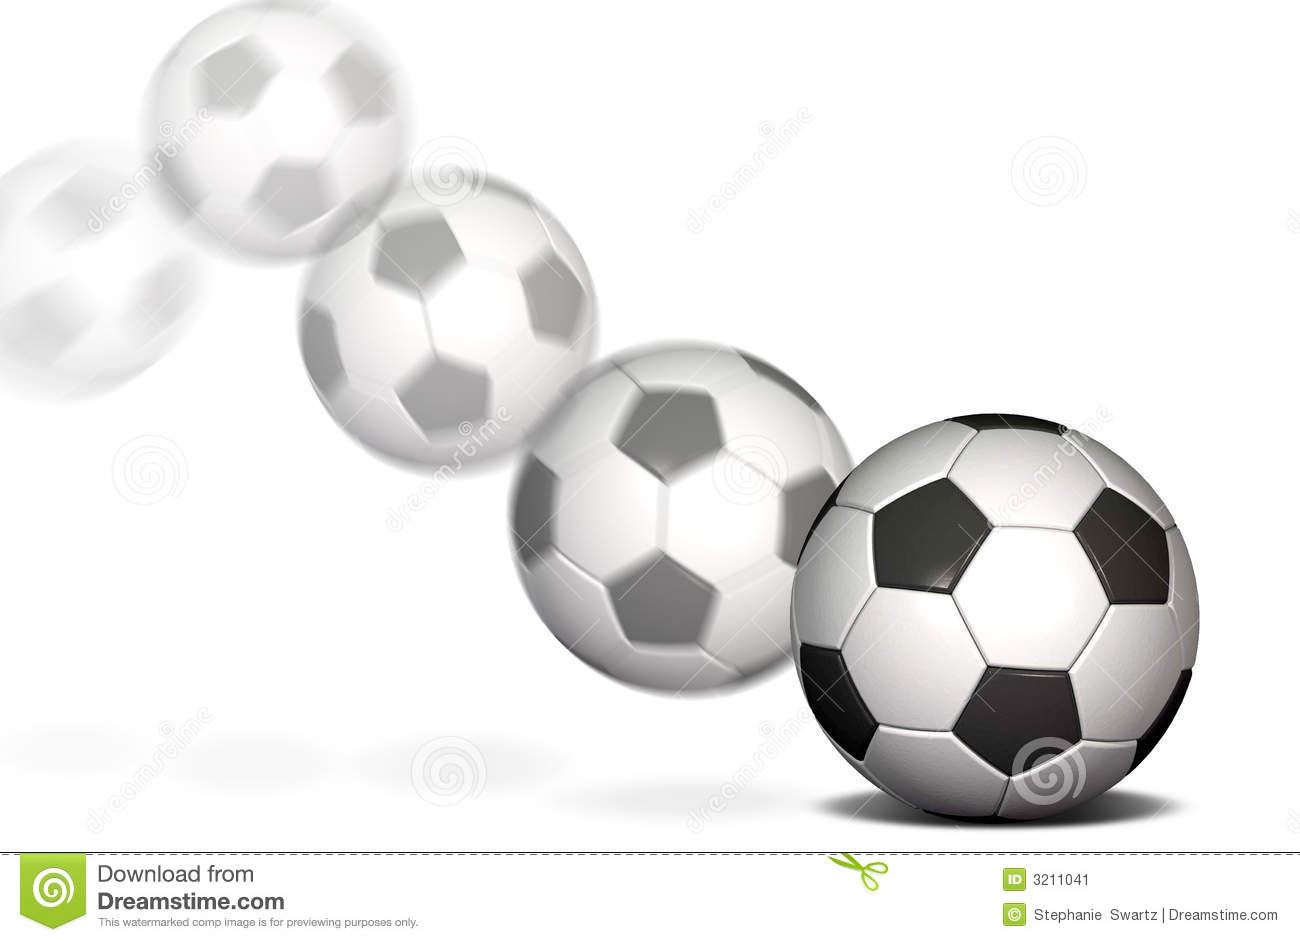 Soccer Ball In Motion Stock Image Image 3211041